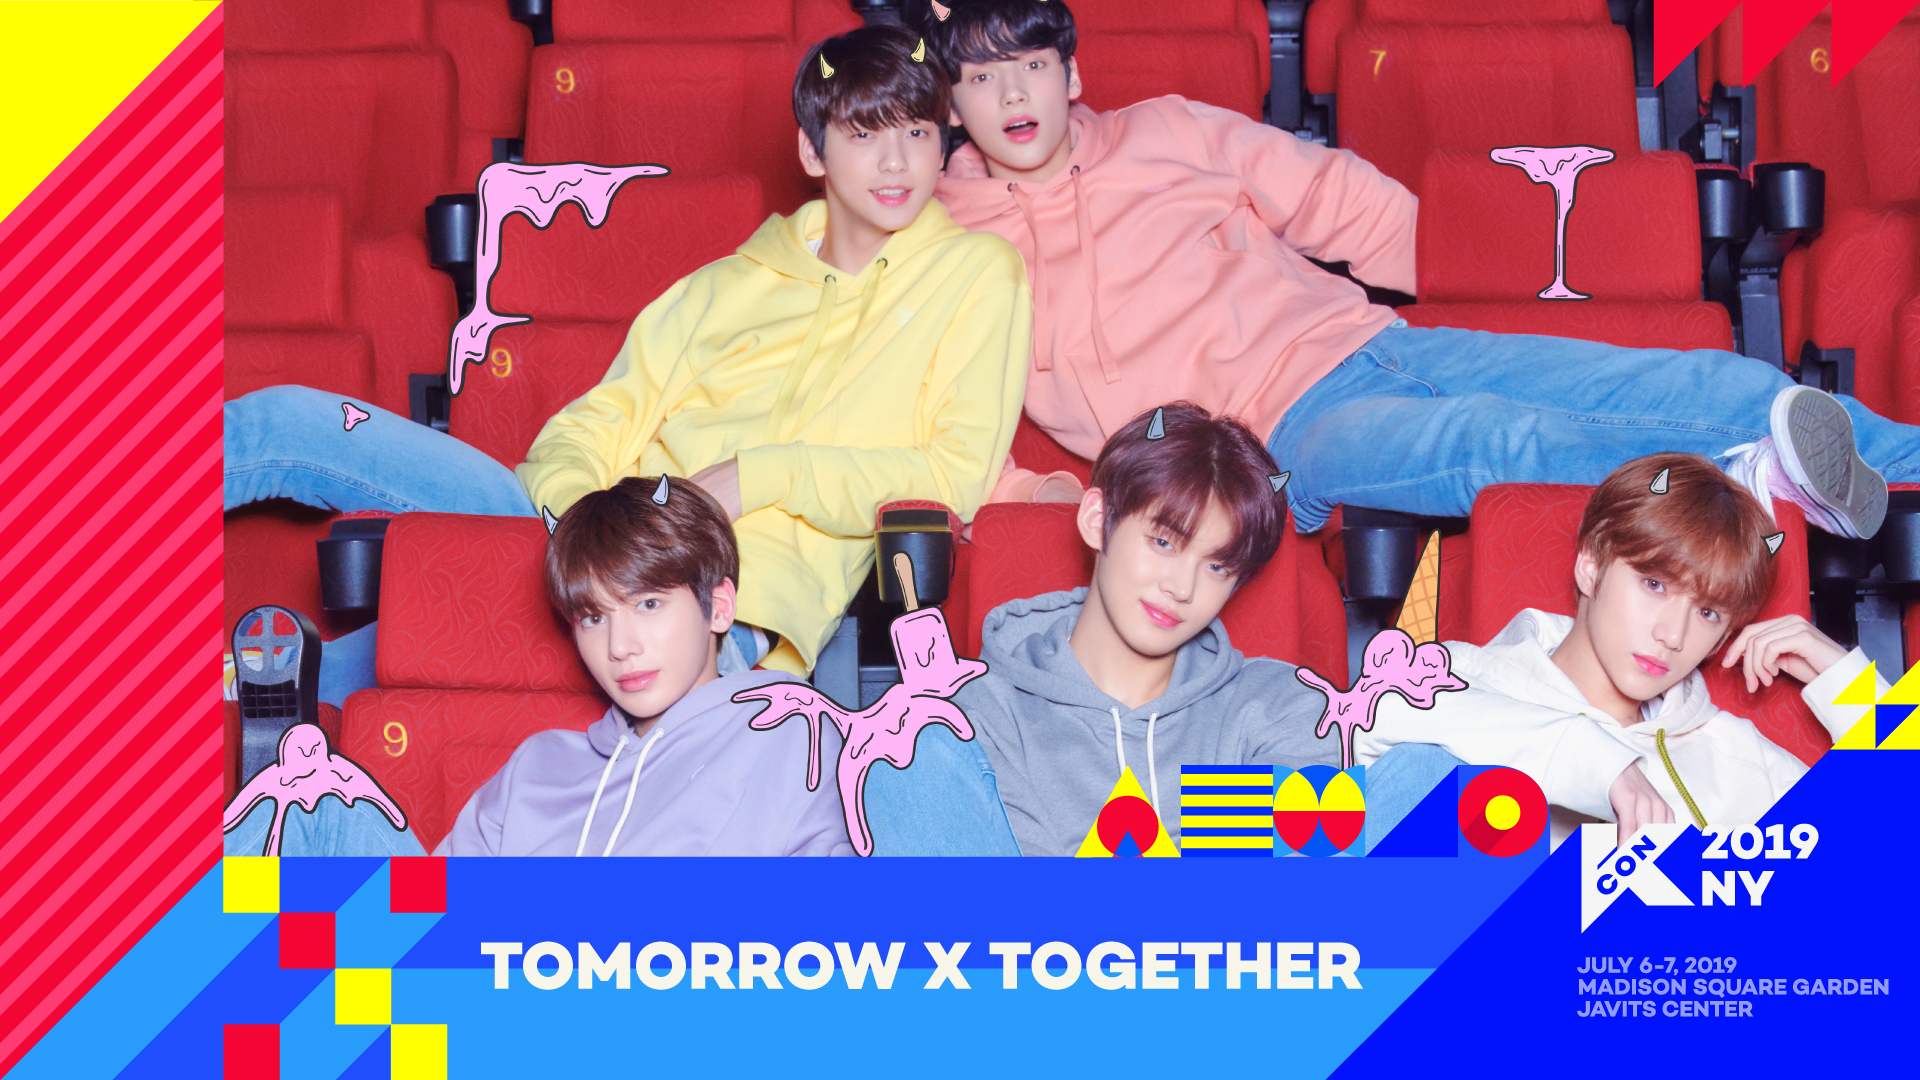 KCON NY Has Announced The First Artists In Their 2019 Lineup!